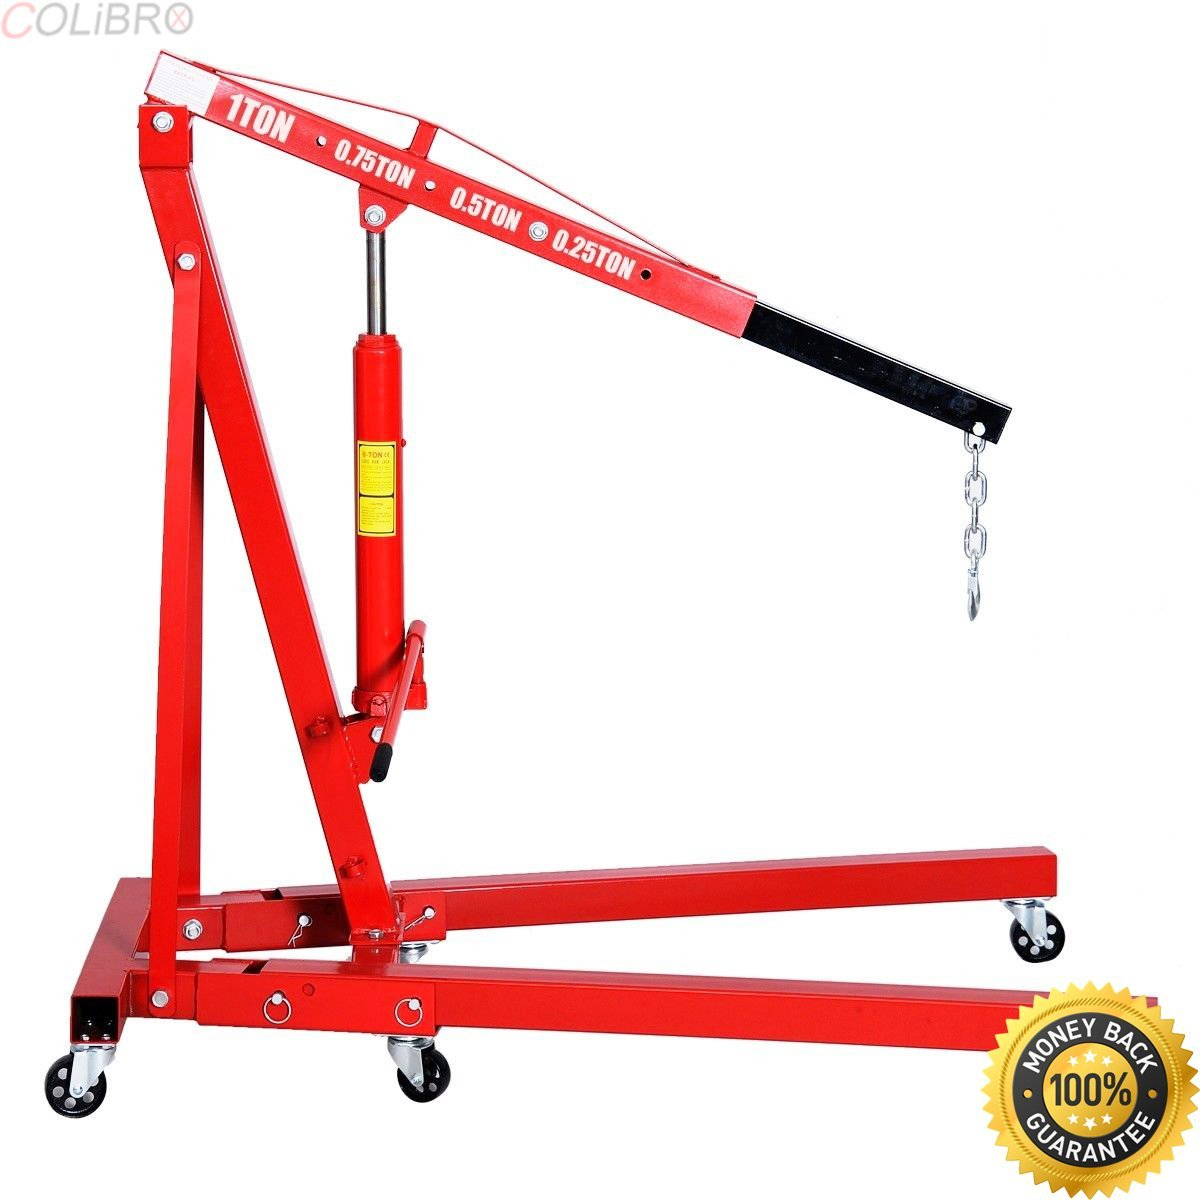 COLIBROX--1 Ton Folding Hydraulic Engine Crane Hoist Lift Stand Picker Wheel Garage. 2 ton engine hoist for sale. 1 ton cherry picker for sale. heavy duty diesel engine hoist, overhead shop crane.